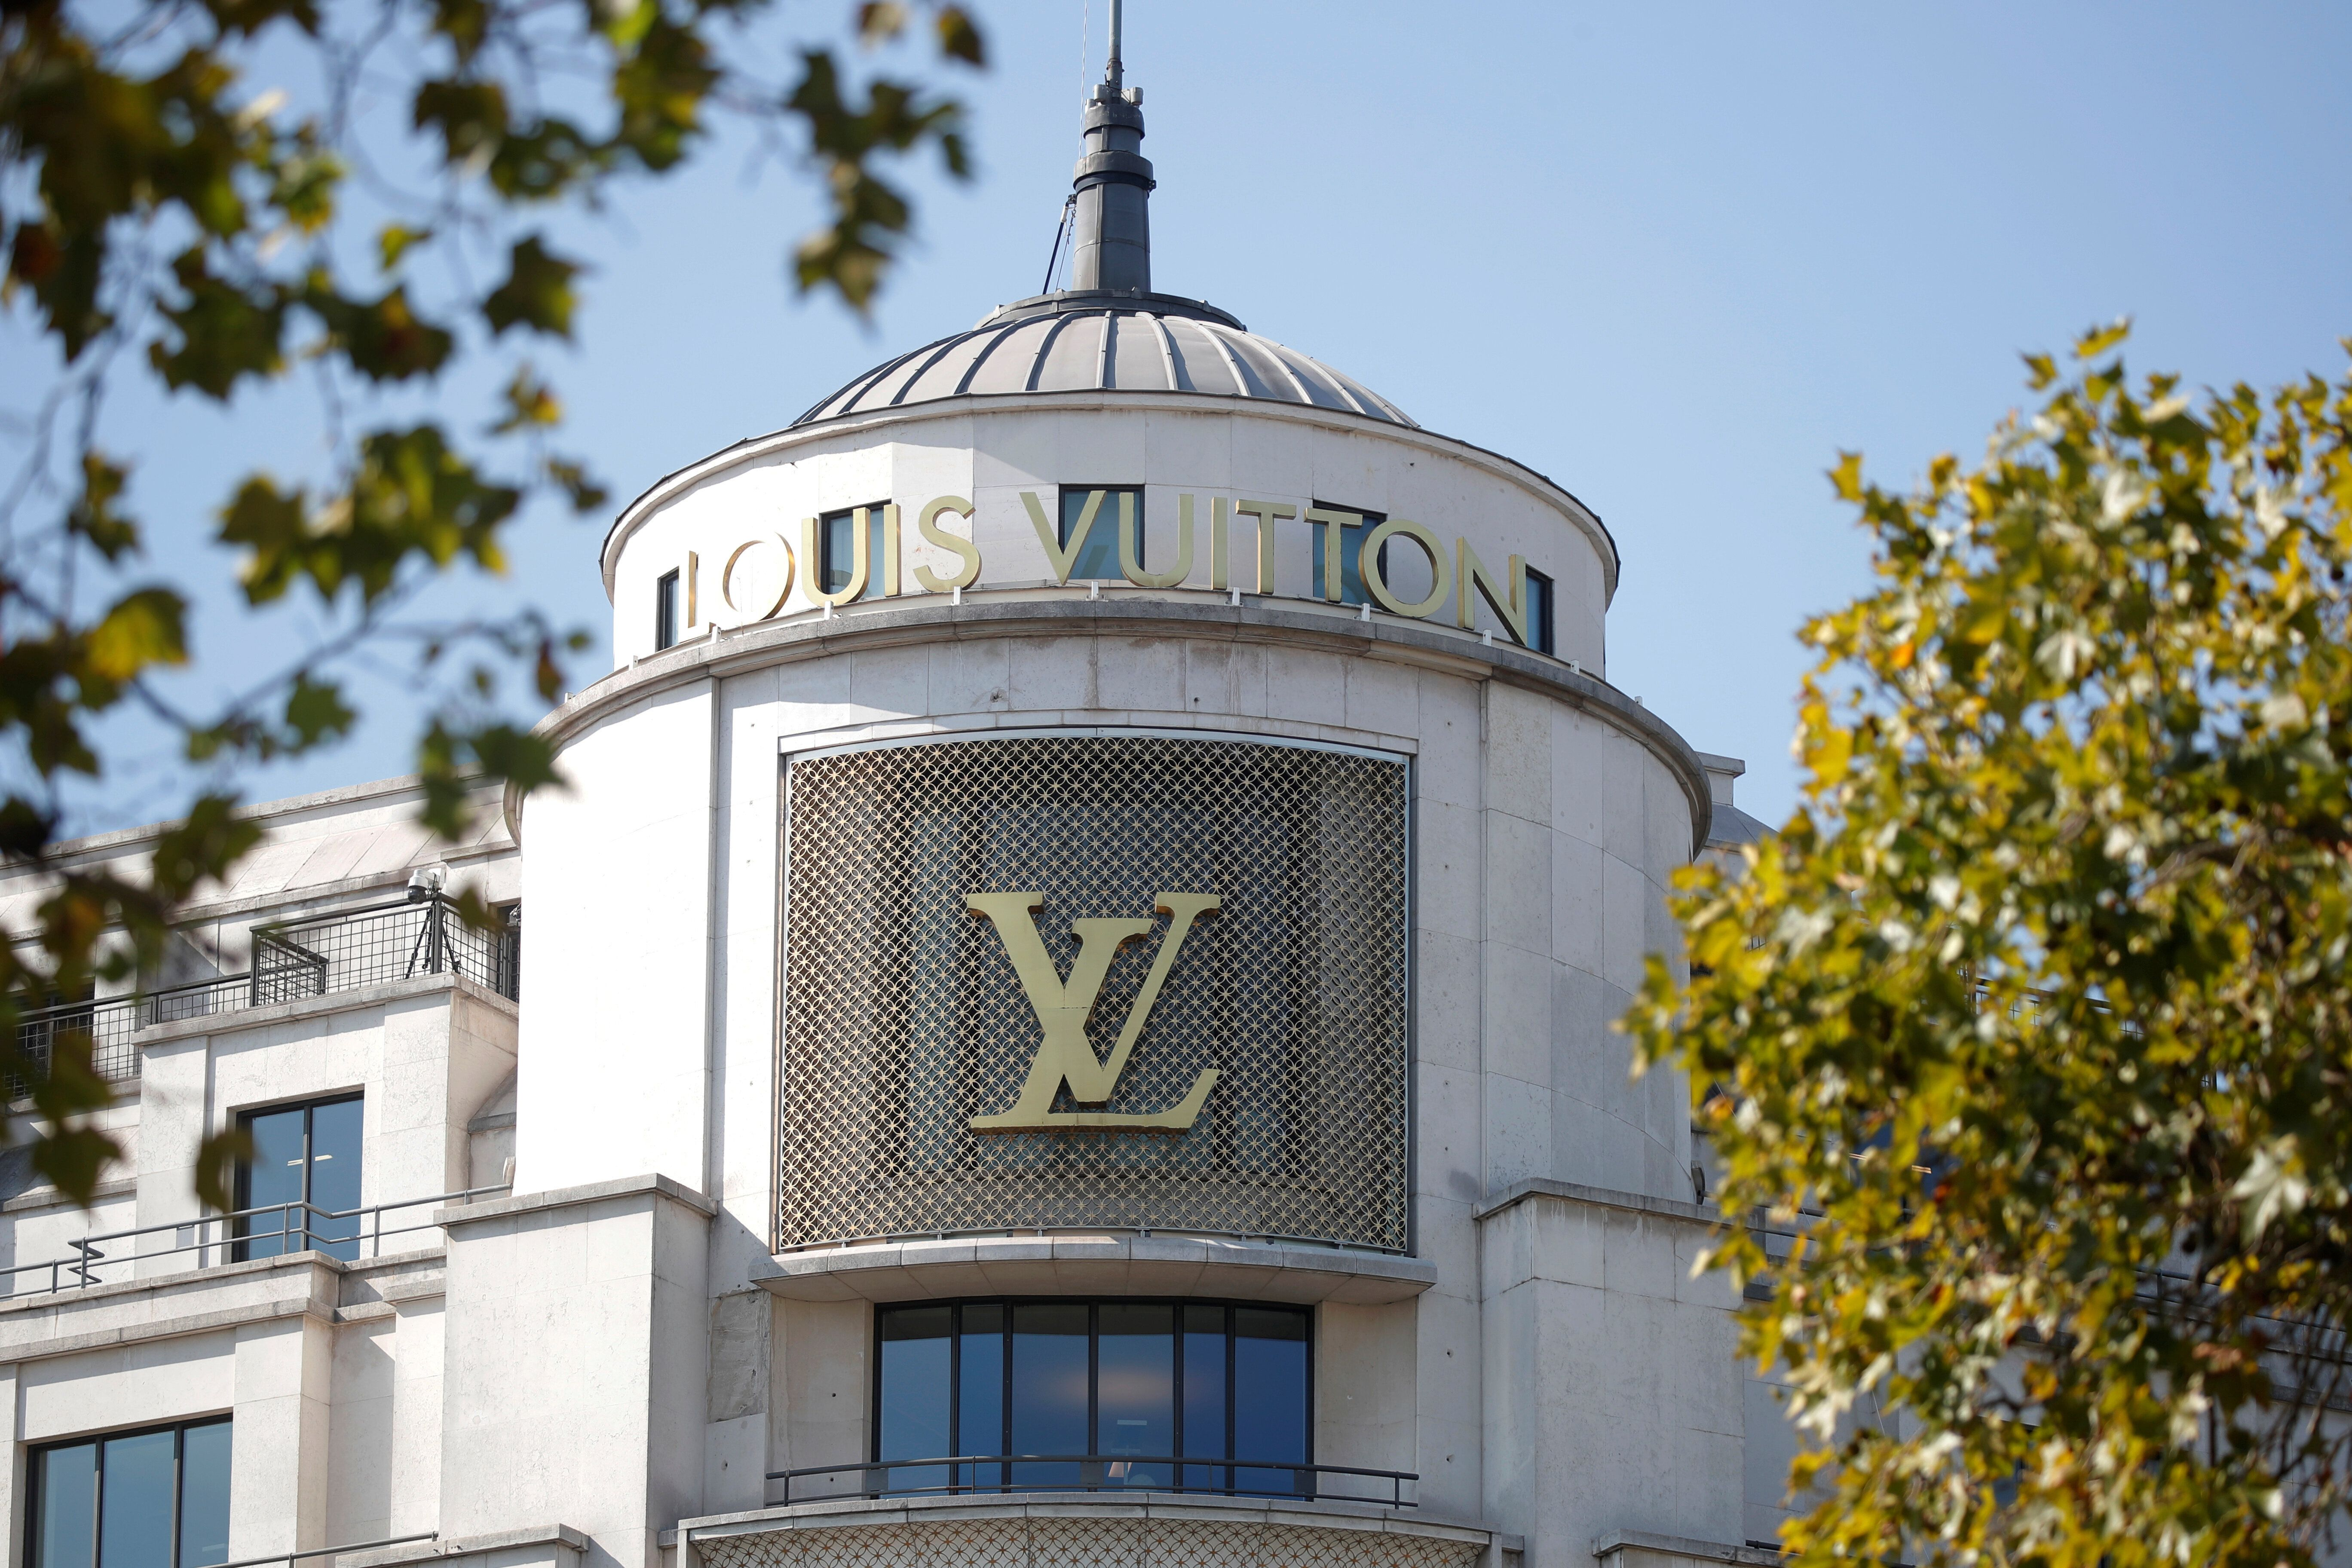 La ville de Vendôme vend son nom à Vuitton pour 10.000 euros (photo du 18 septembre 2020,...